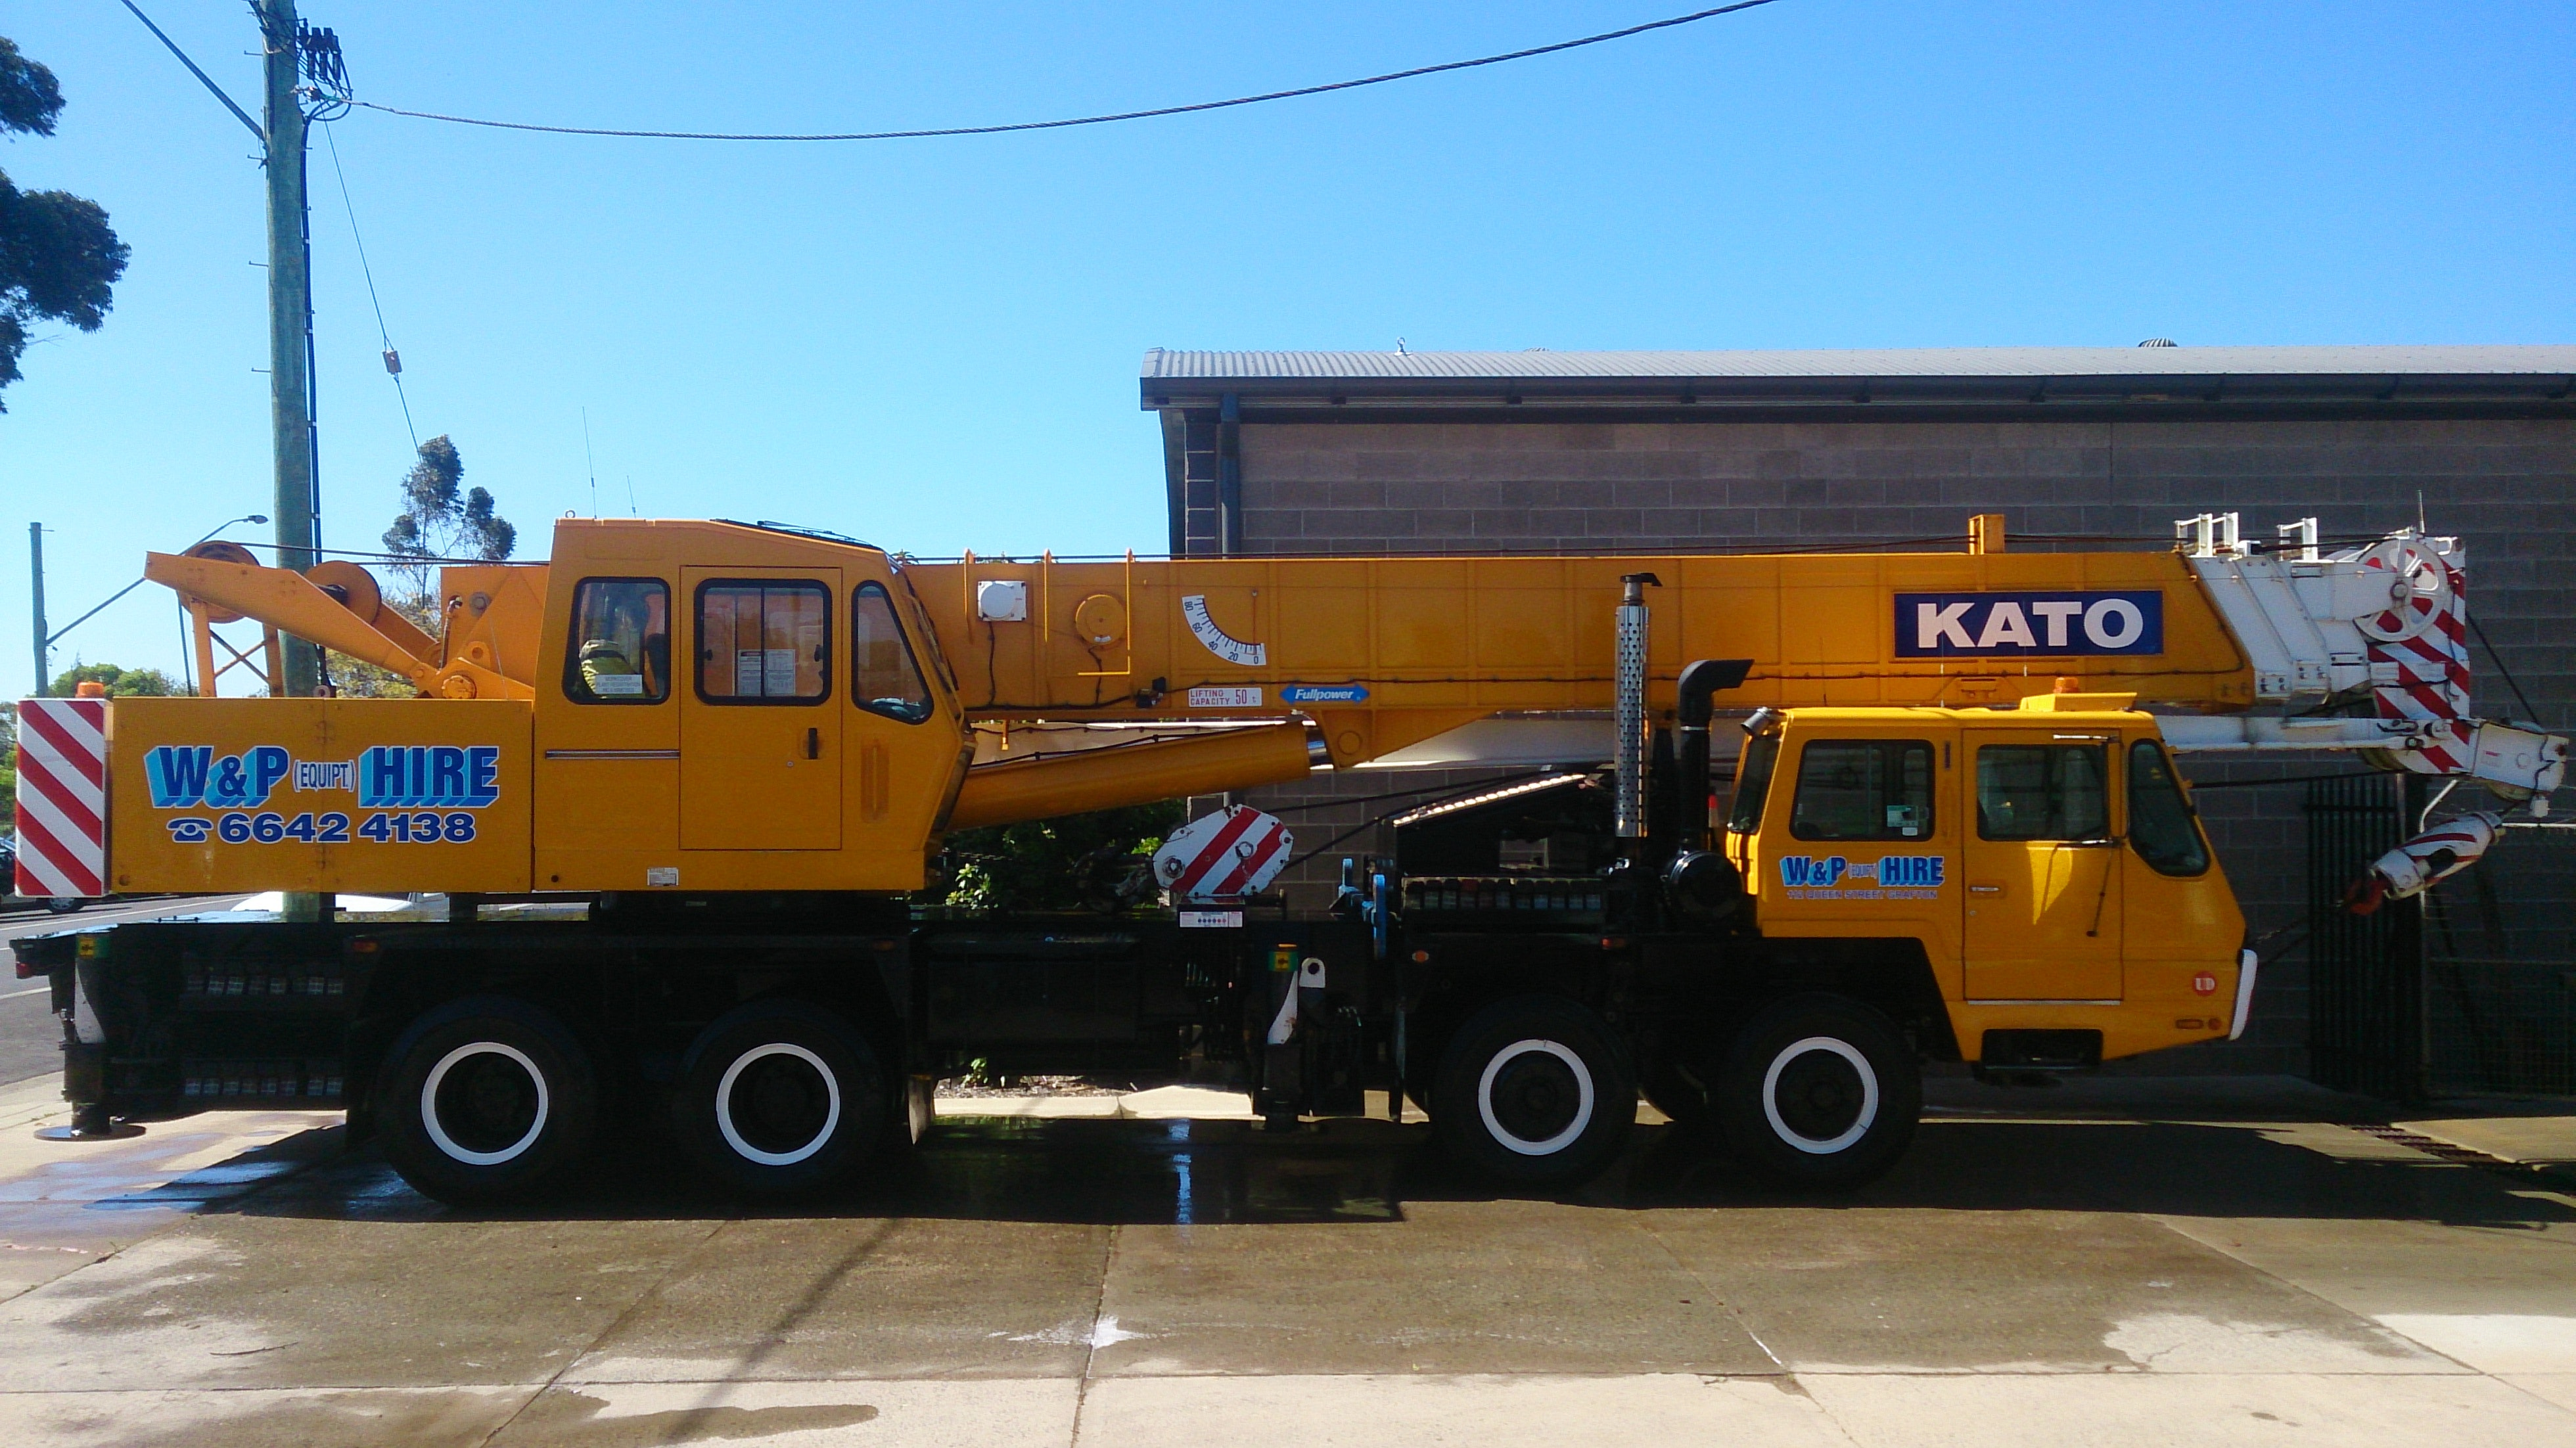 51t - 100t SWL Cranes for hire - Wicks and Parker Cranes